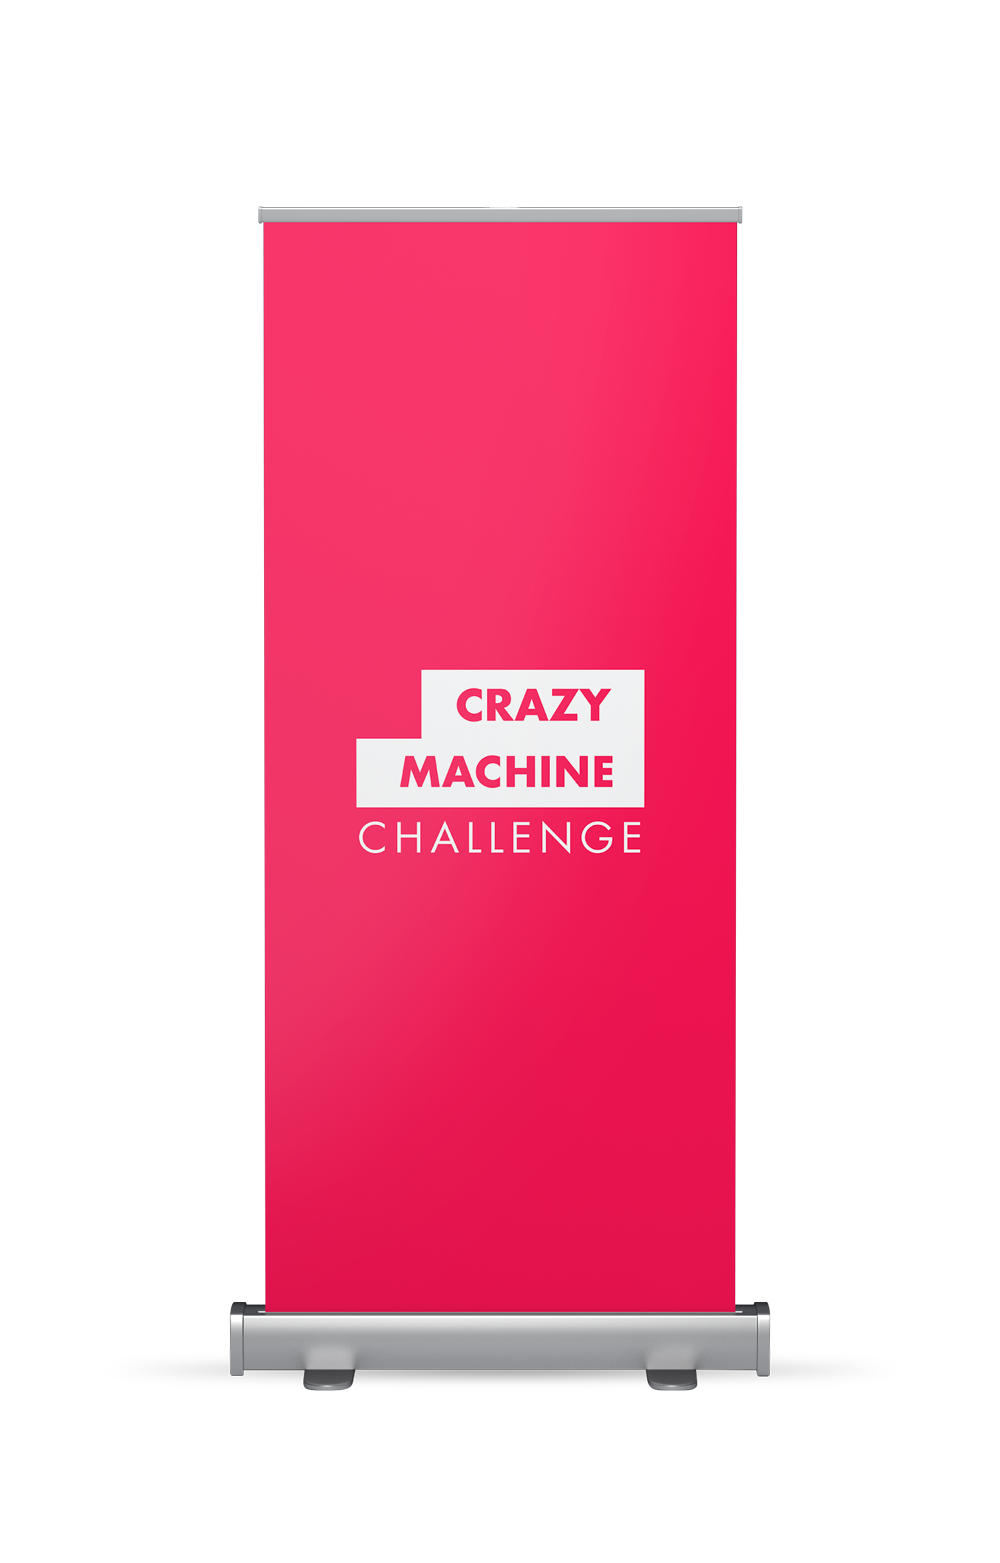 Rollup Crazy Machine Challenge